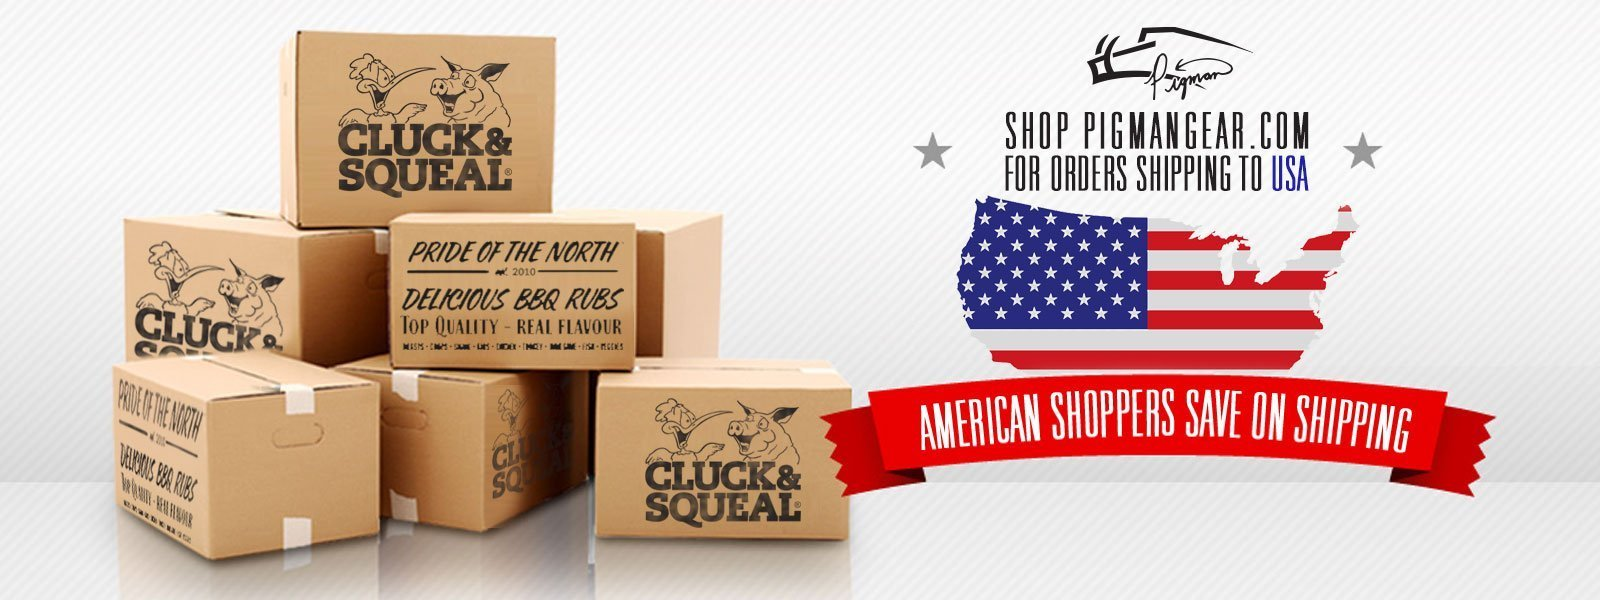 Purchase Cluck & Squeal